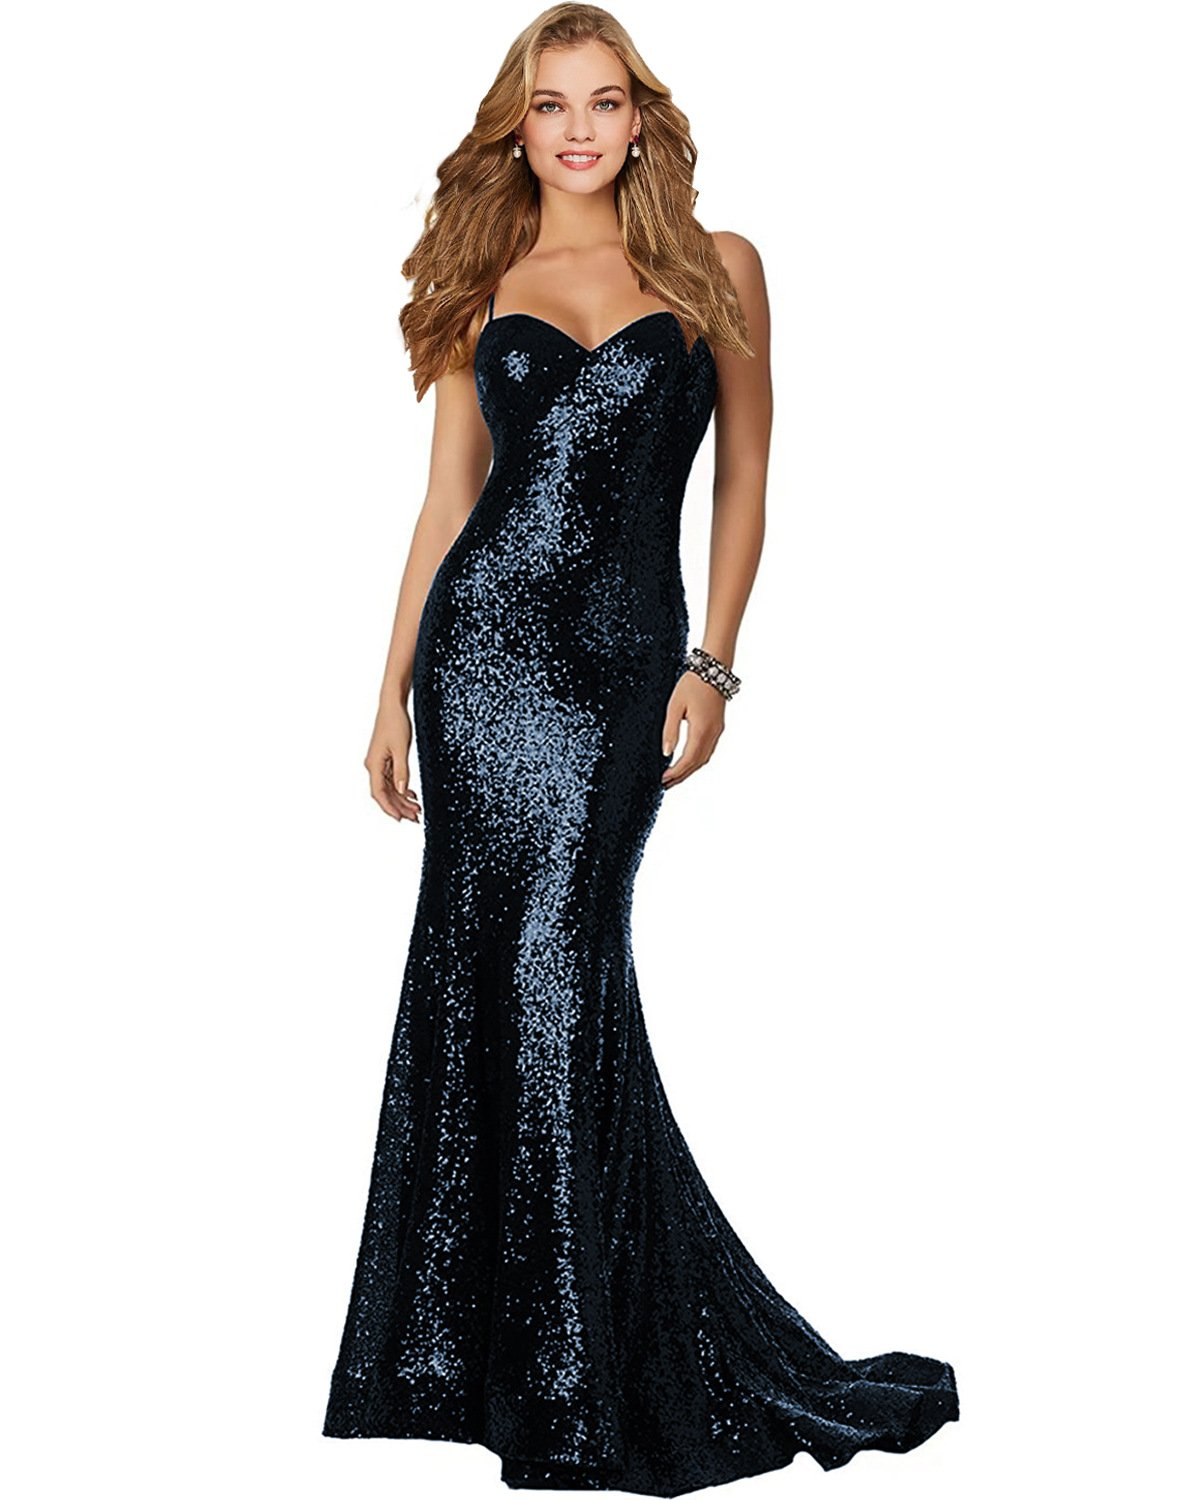 267259ac55 Lily Wedding Womens Sexy Sequined Mermaid Prom Dresses 2018 Long Formal  Evening Party Gowns P186 Size 14 Navy Blue